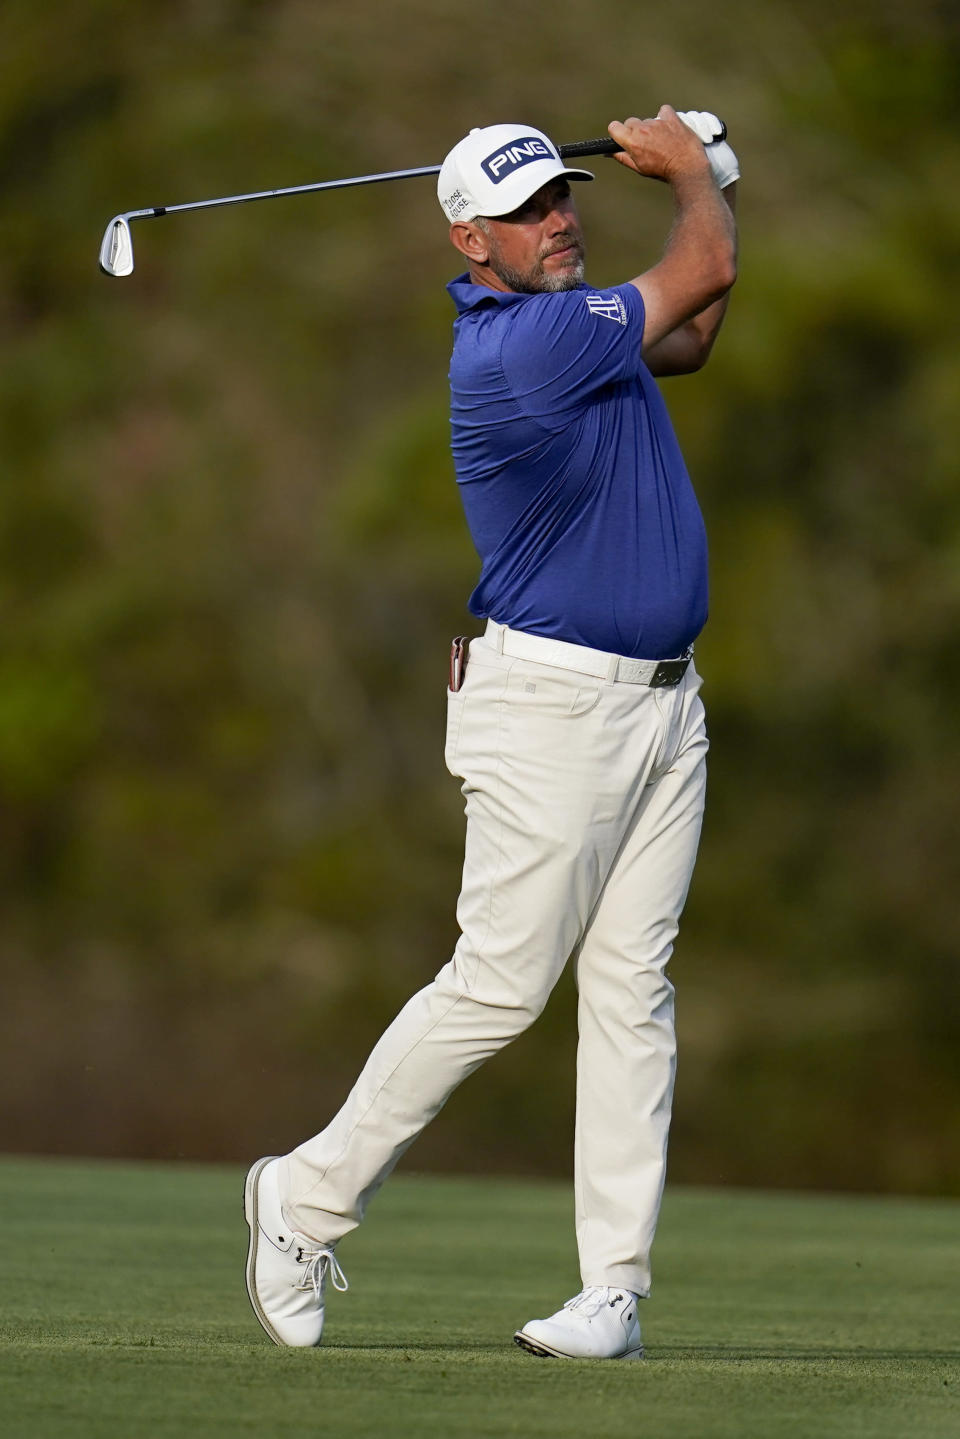 Lee Westwood, of England, hits from the fairway on the 14th hole during the third round of The Players Championship golf tournament Saturday, March 13, 2021, in Ponte Vedra Beach, Fla. (AP Photo/Gerald Herbert)